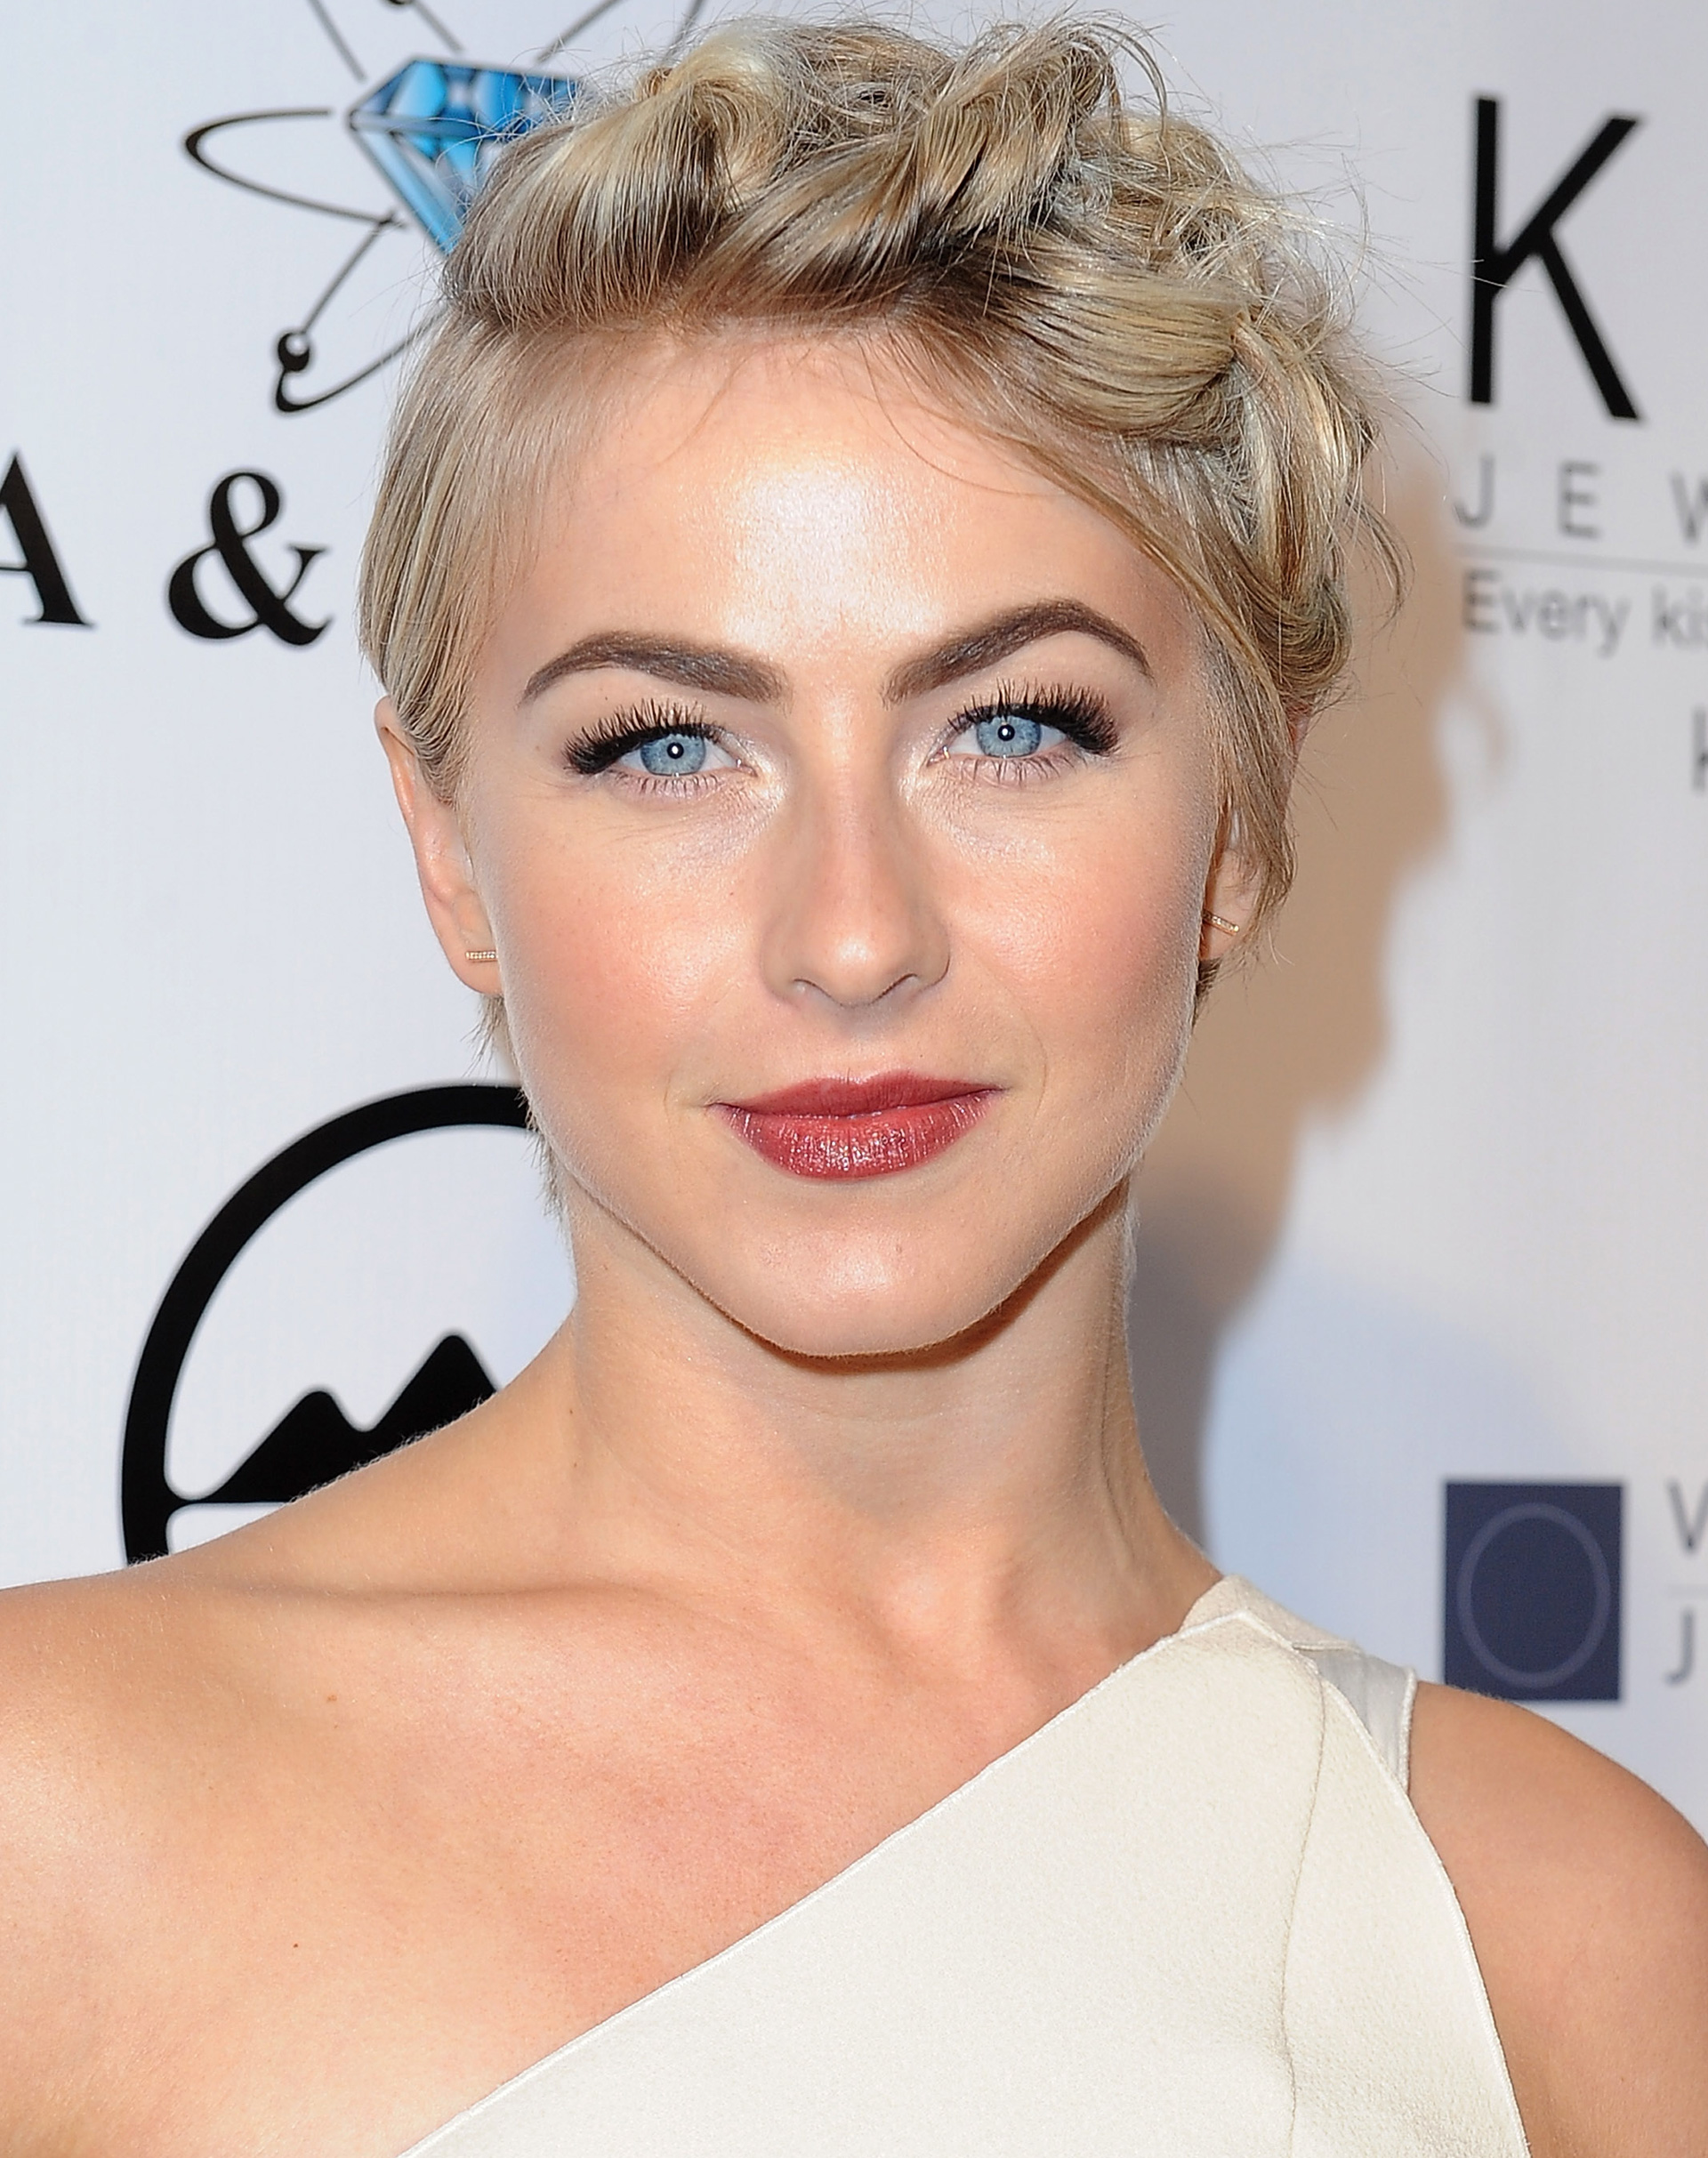 Julianne hough bob hairstyle hairstyle of nowdays julianne hough bob hair inspiration bob hairstyles and haircut ideas baditri Choice Image